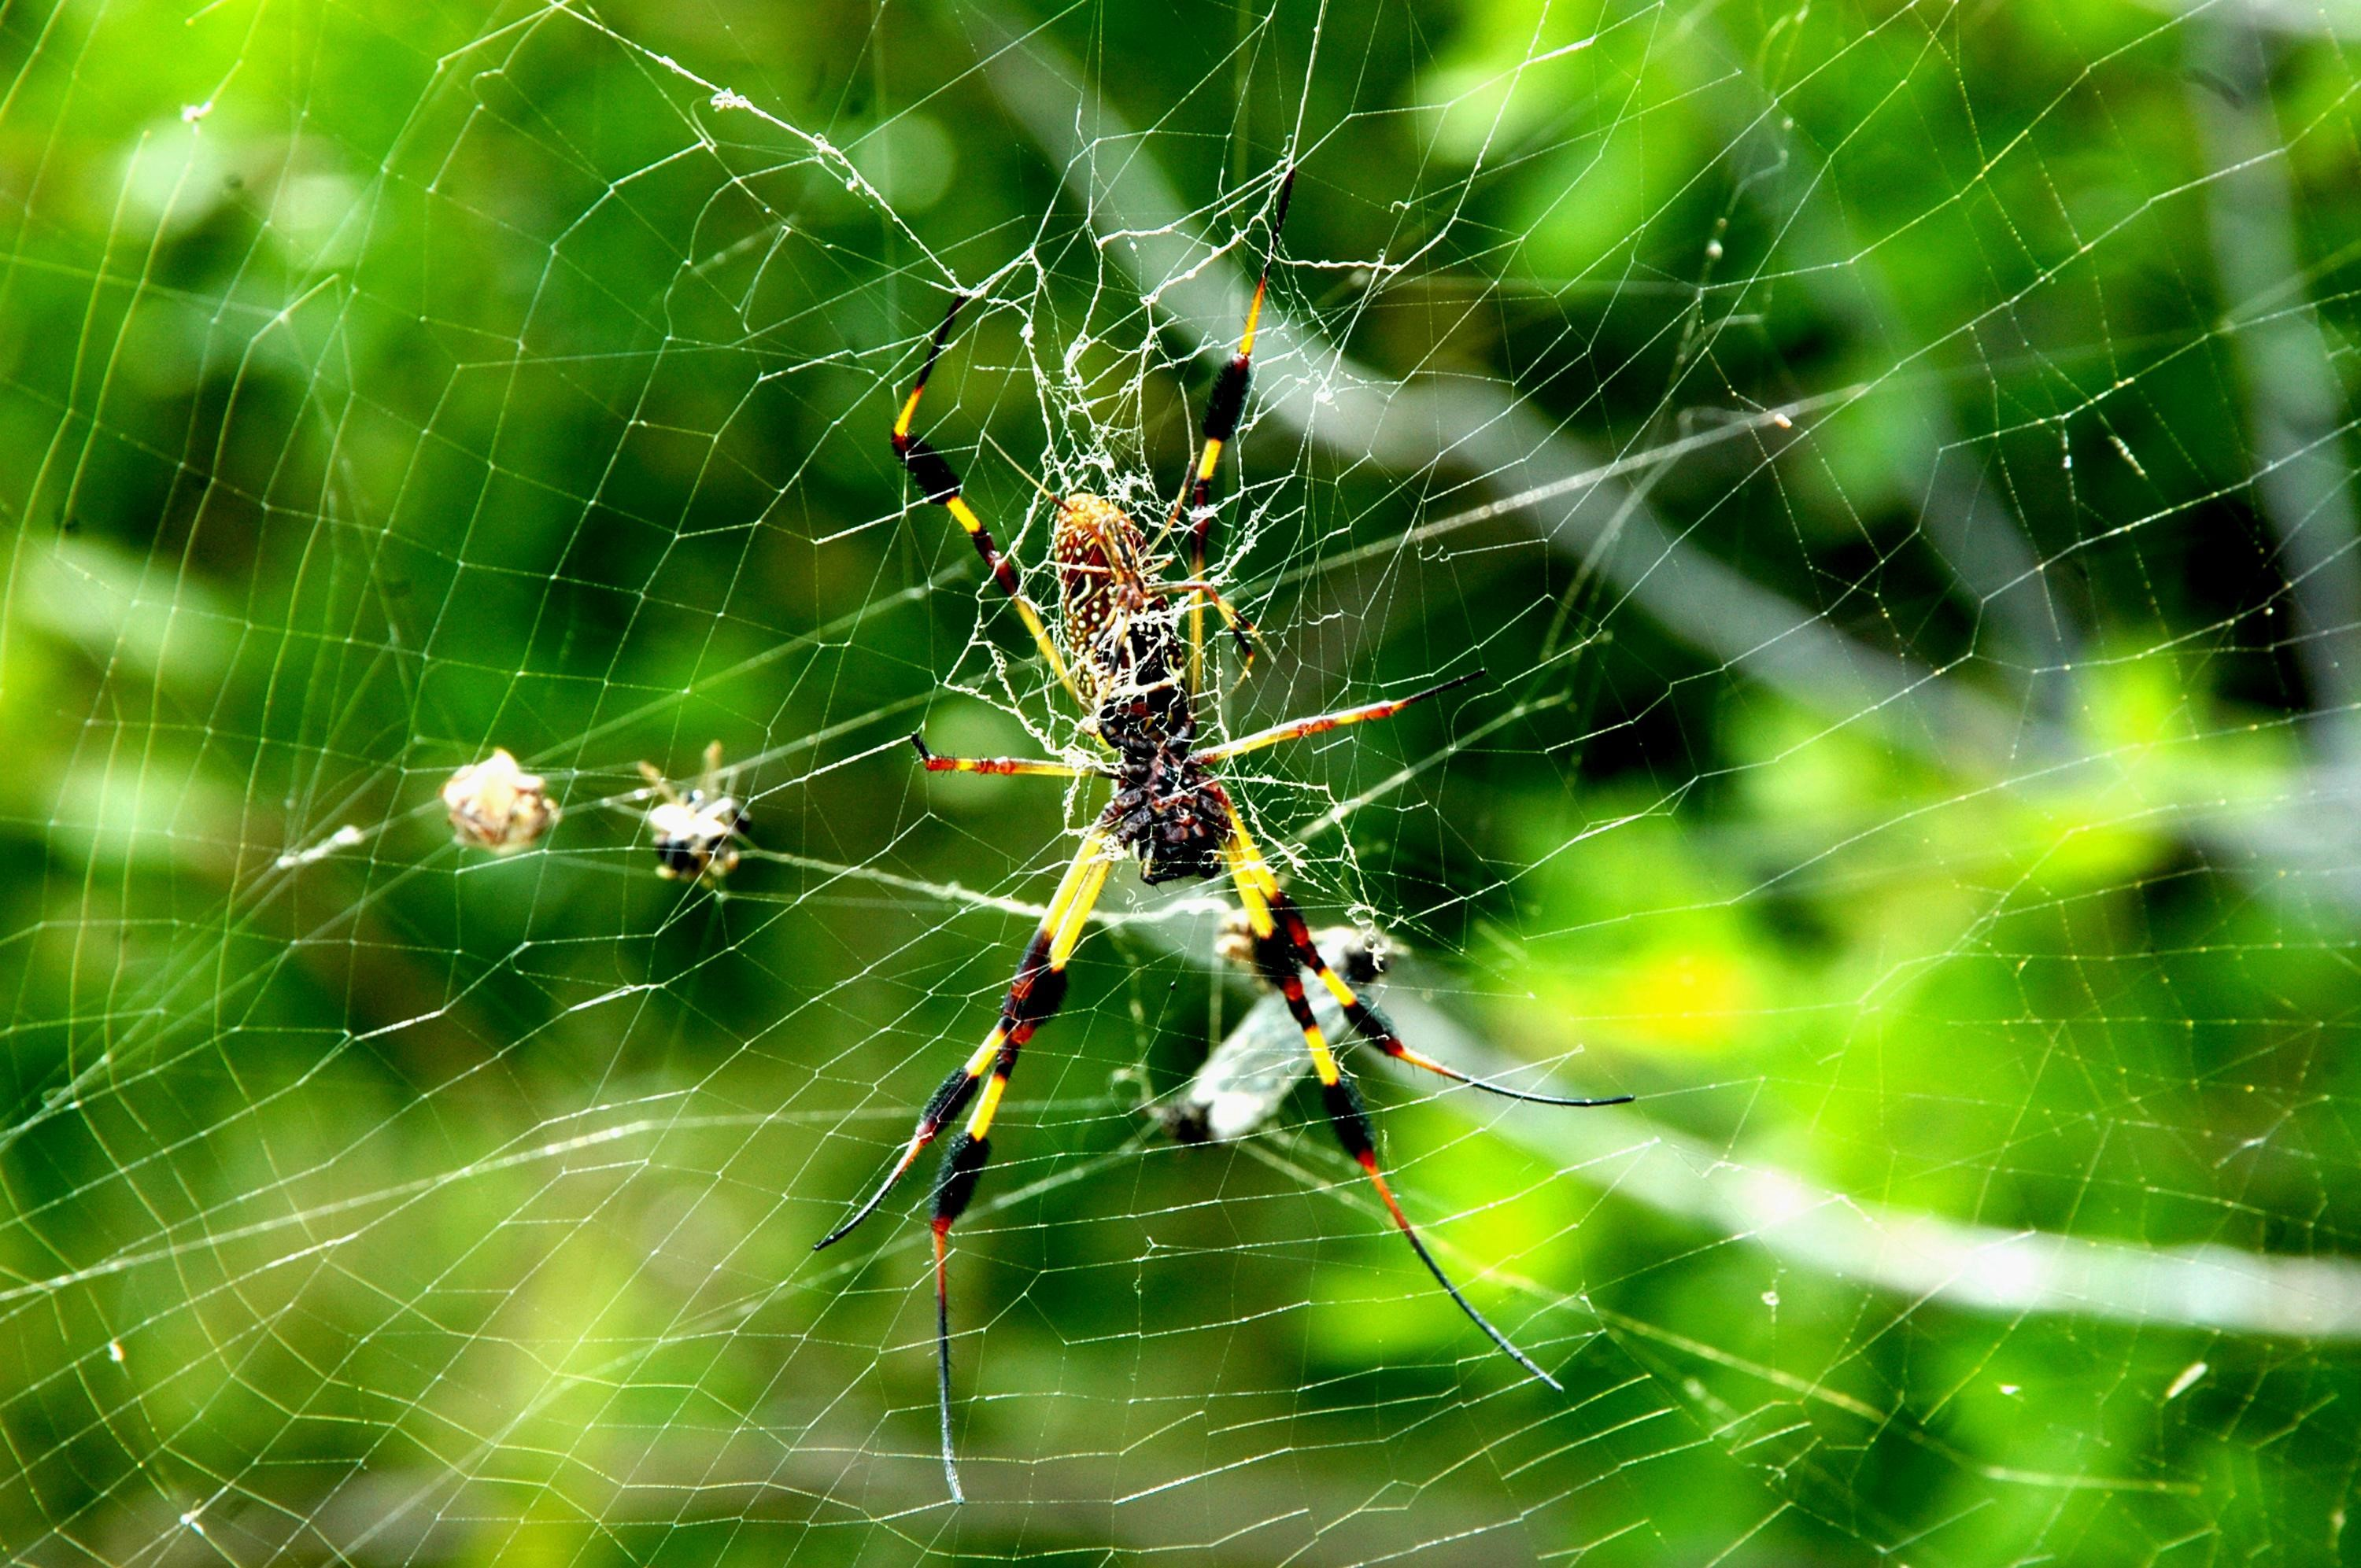 A Golden female Golden Silk spider